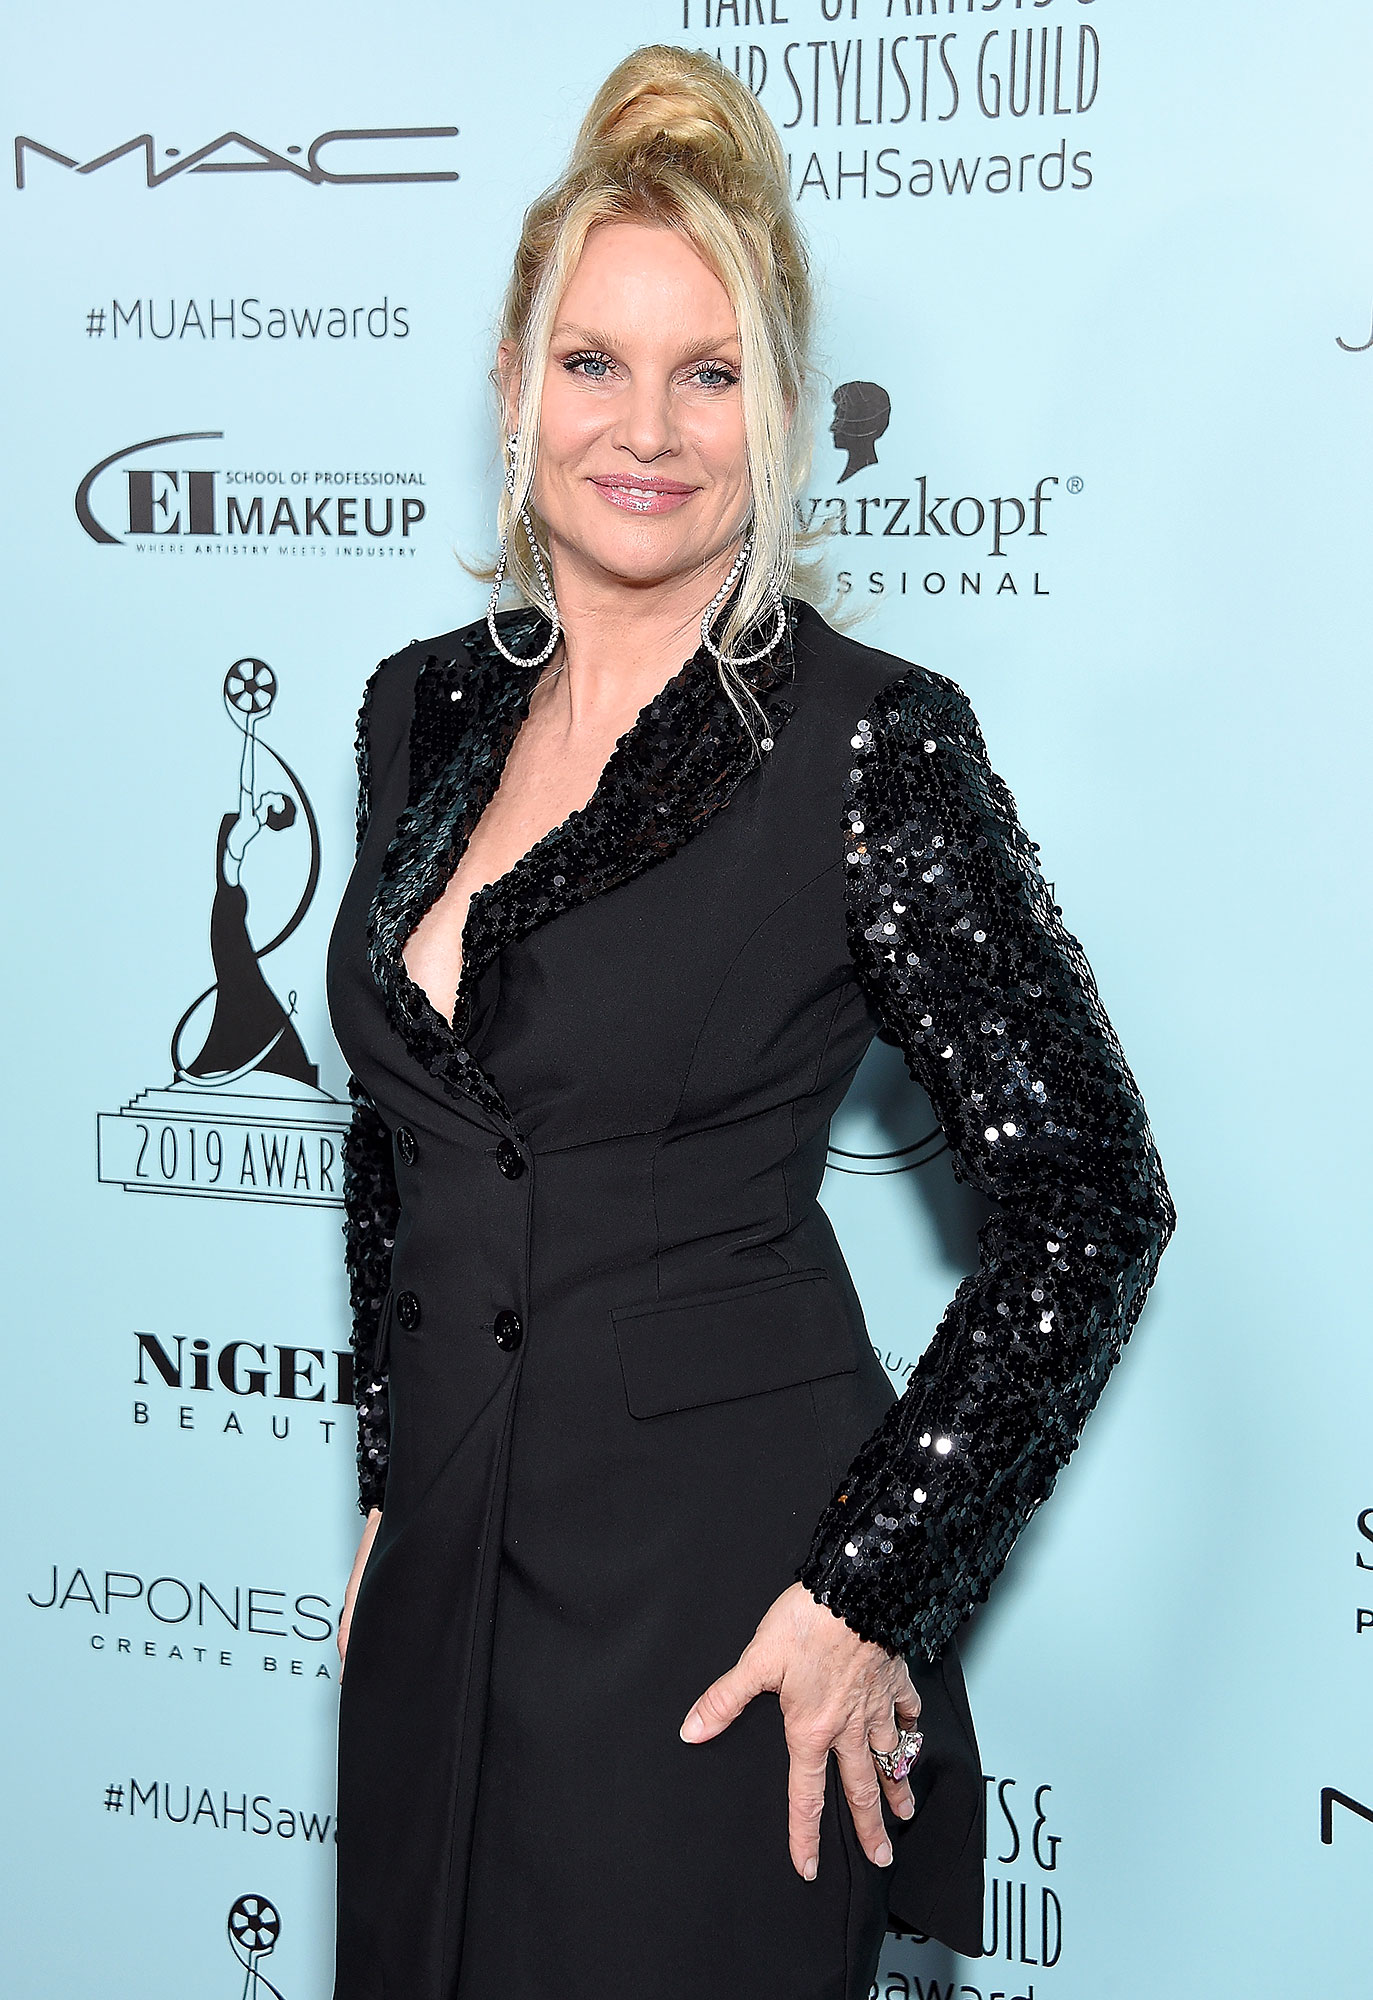 Nicollette Sheridan Is Leaving Dynasty - Nicollette Sheridan attends the 6th Annual Make-Up Artists & Hair Stylists Guild Awards at The Novo by Microsoft on February 16, 2019 in Los Angeles, California.